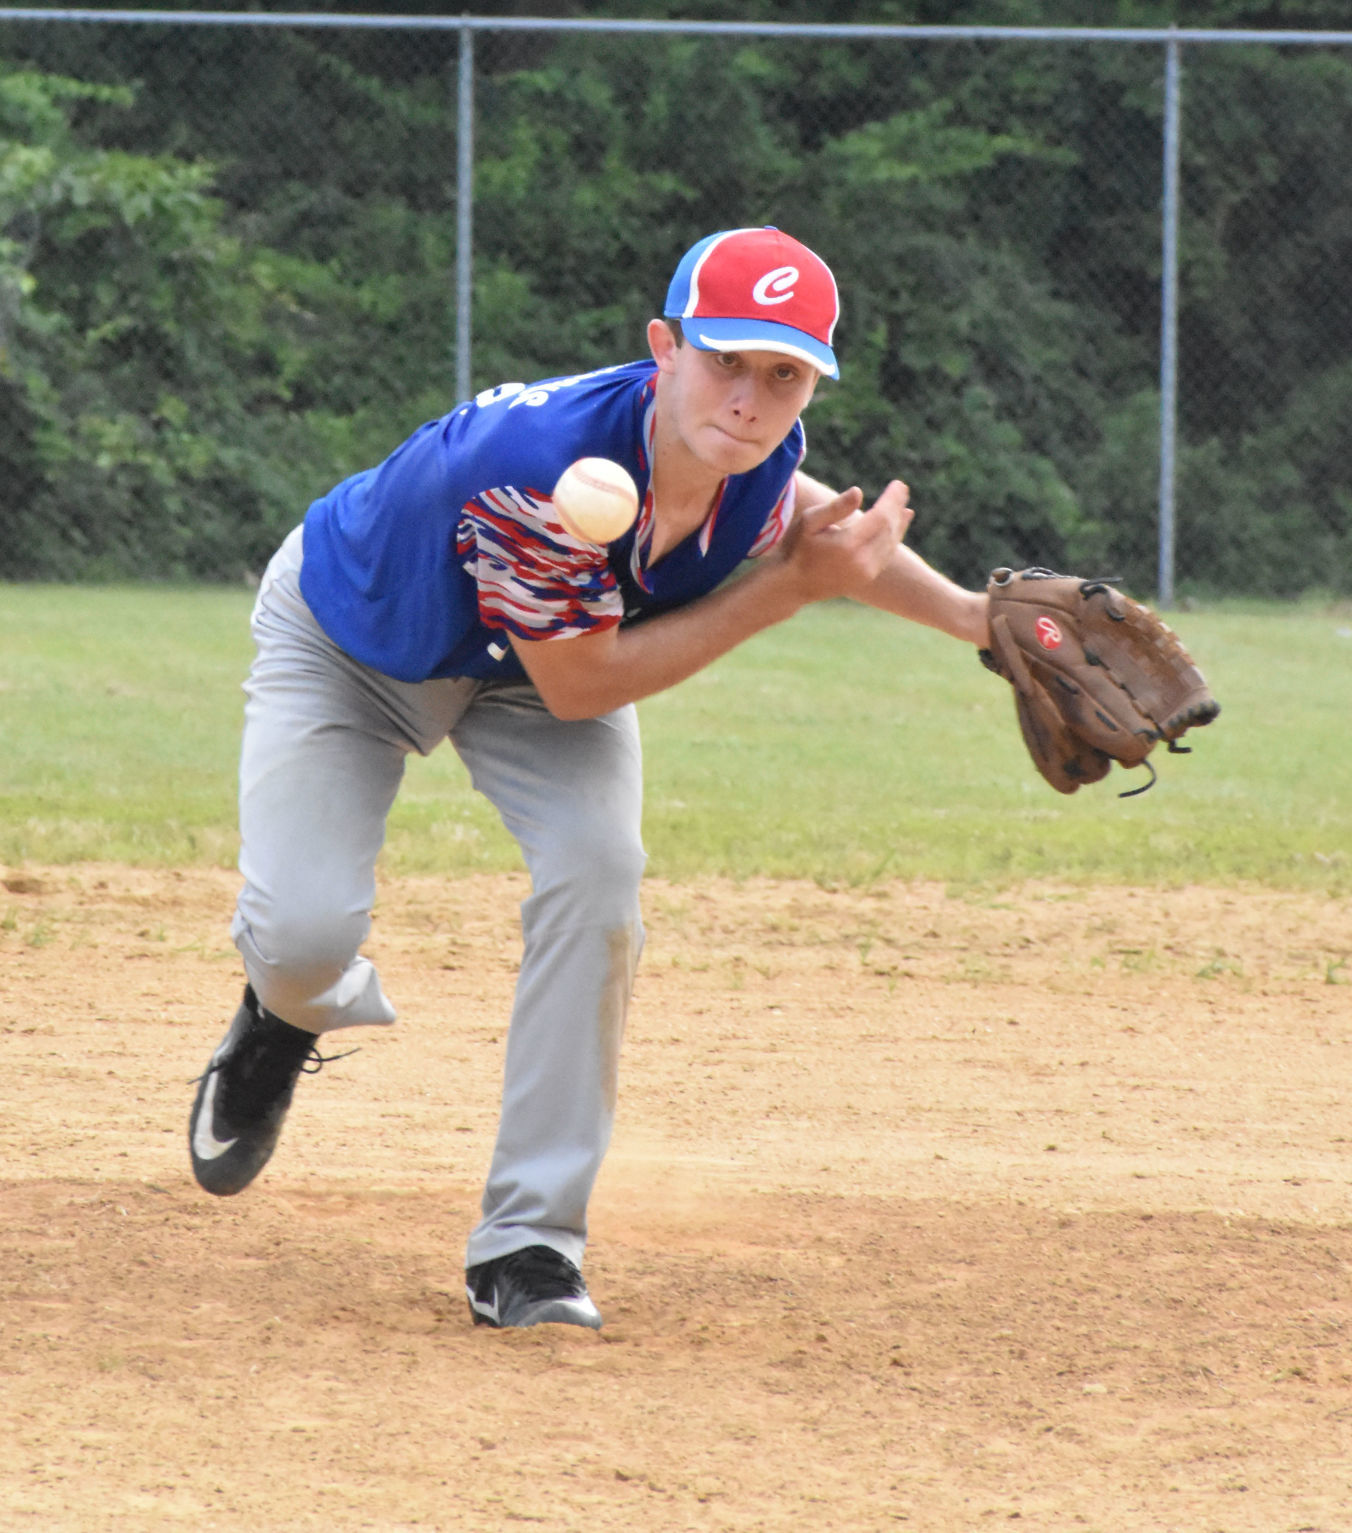 District 6 Junior League Baseball Playoffs: Kent vs. Caroline, July 6, 2019